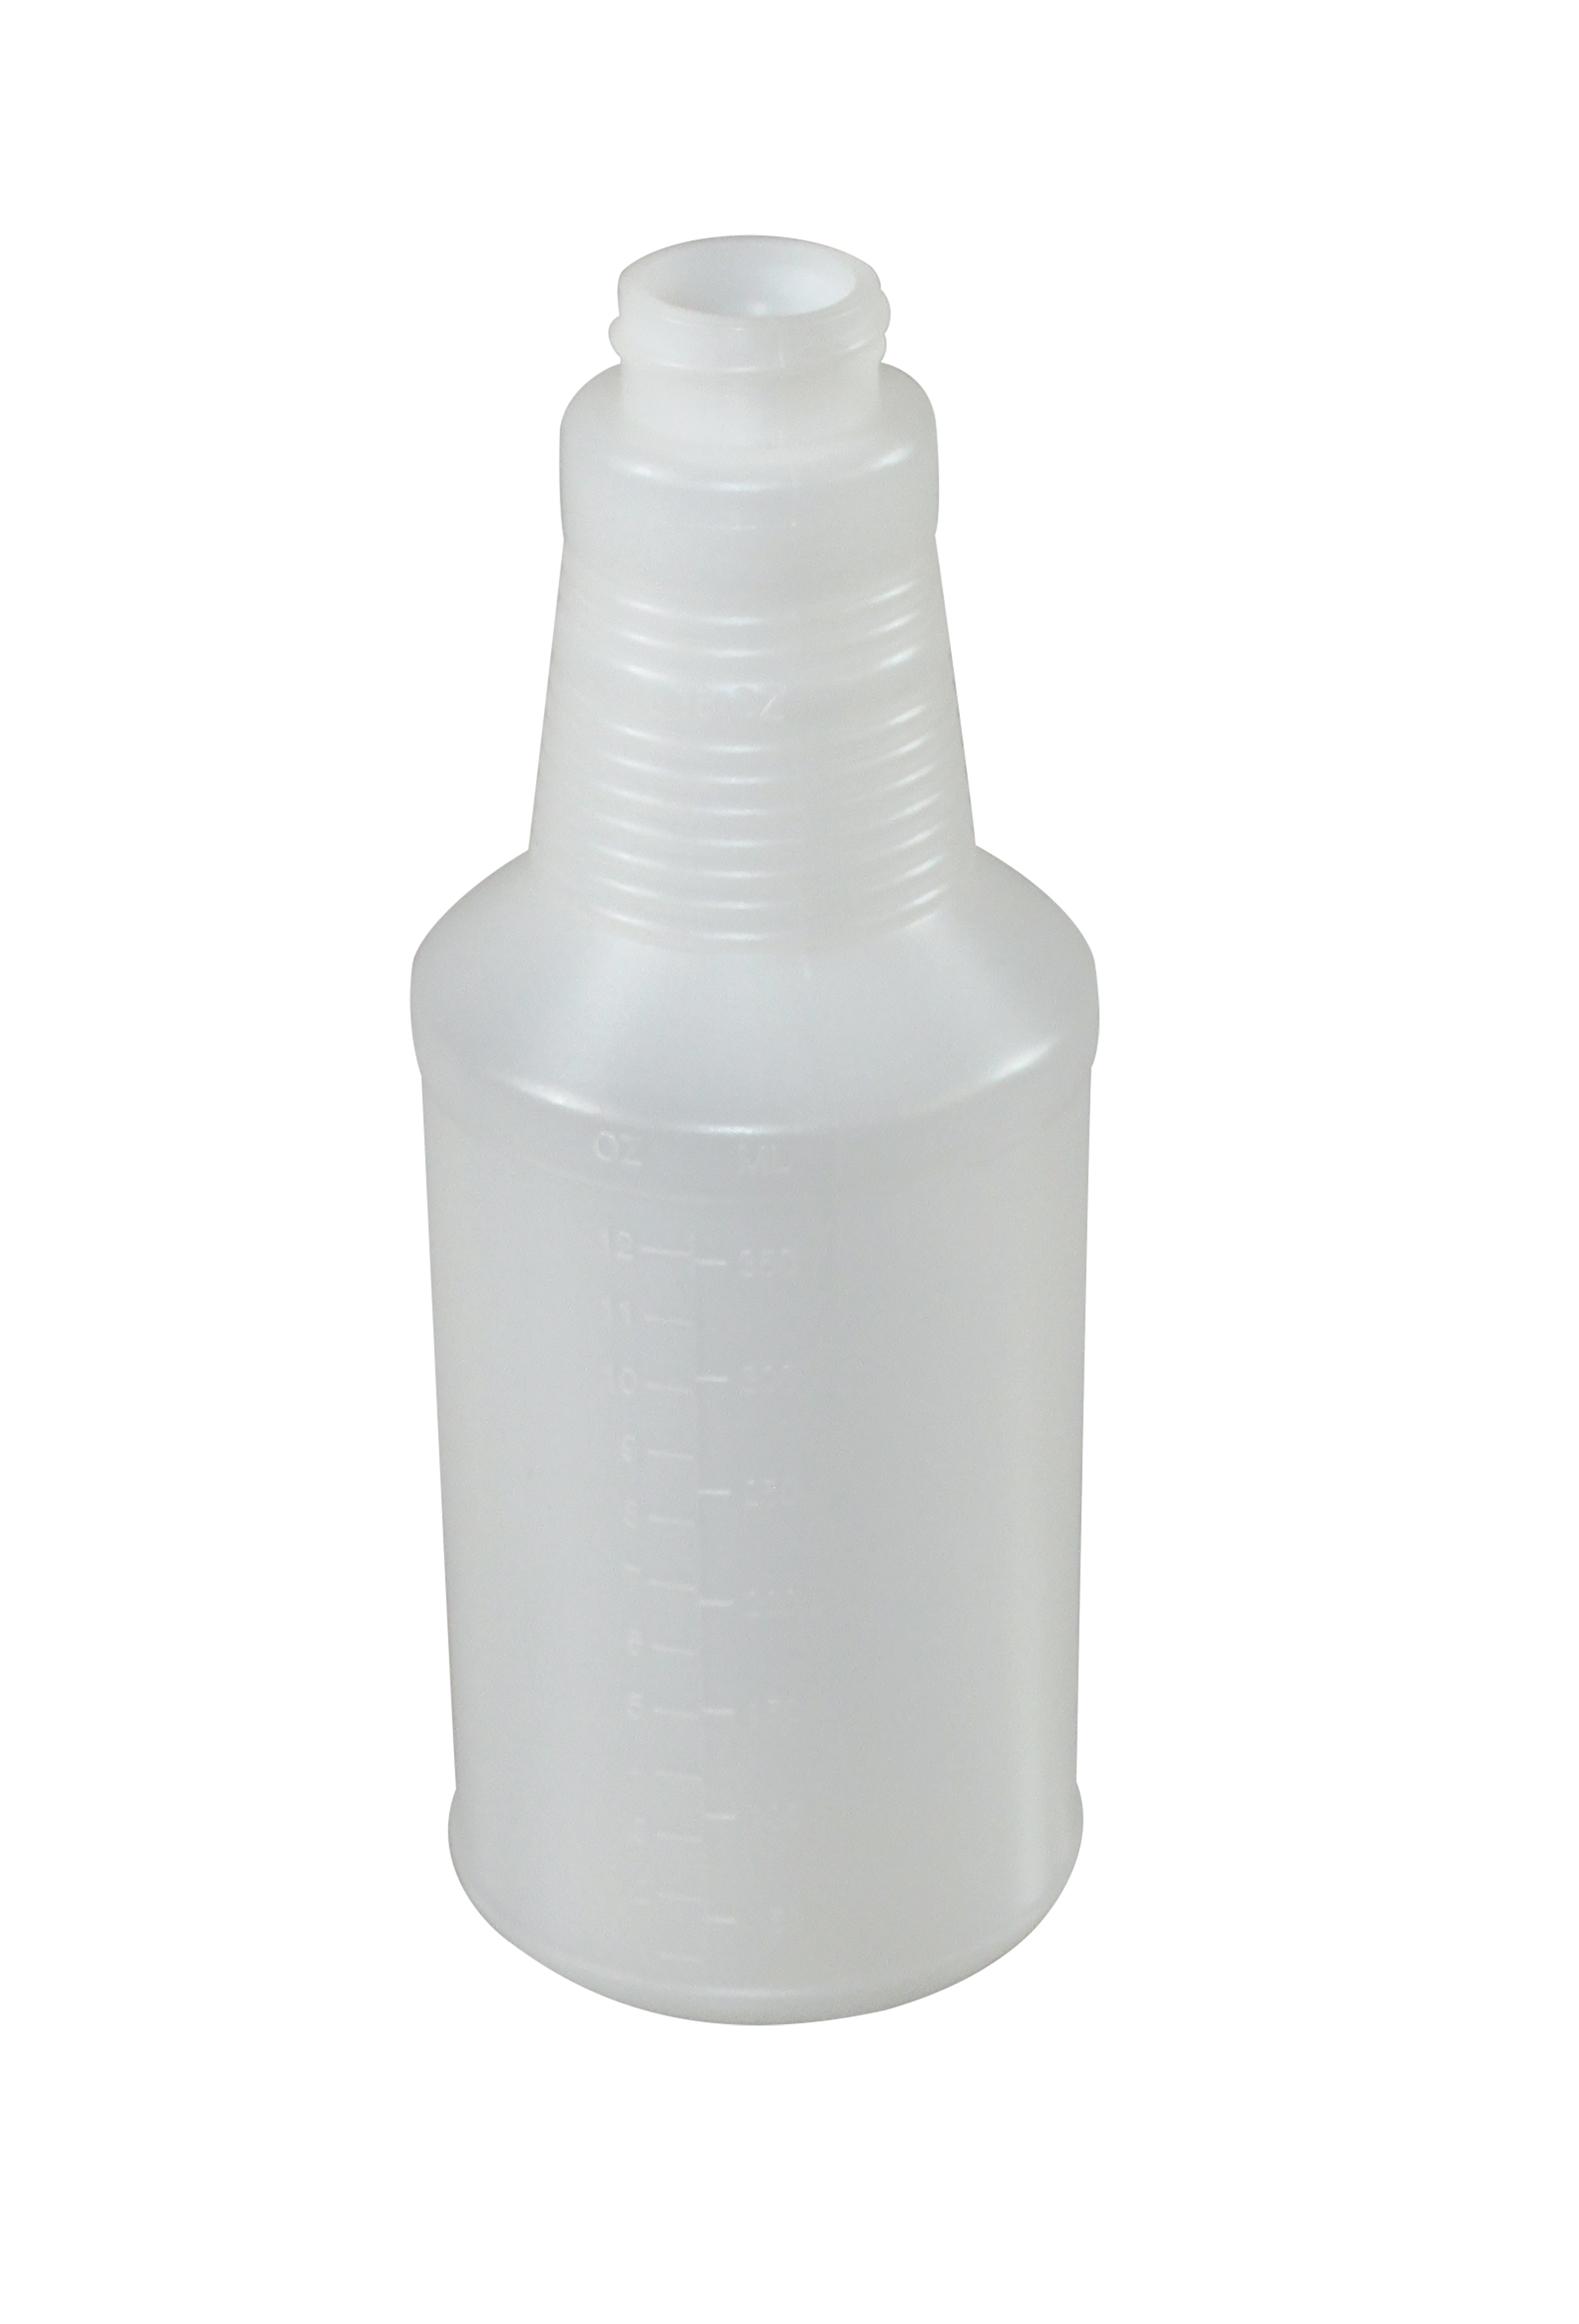 Impact Products 5016 plastic 16 oz. bottle with graduations